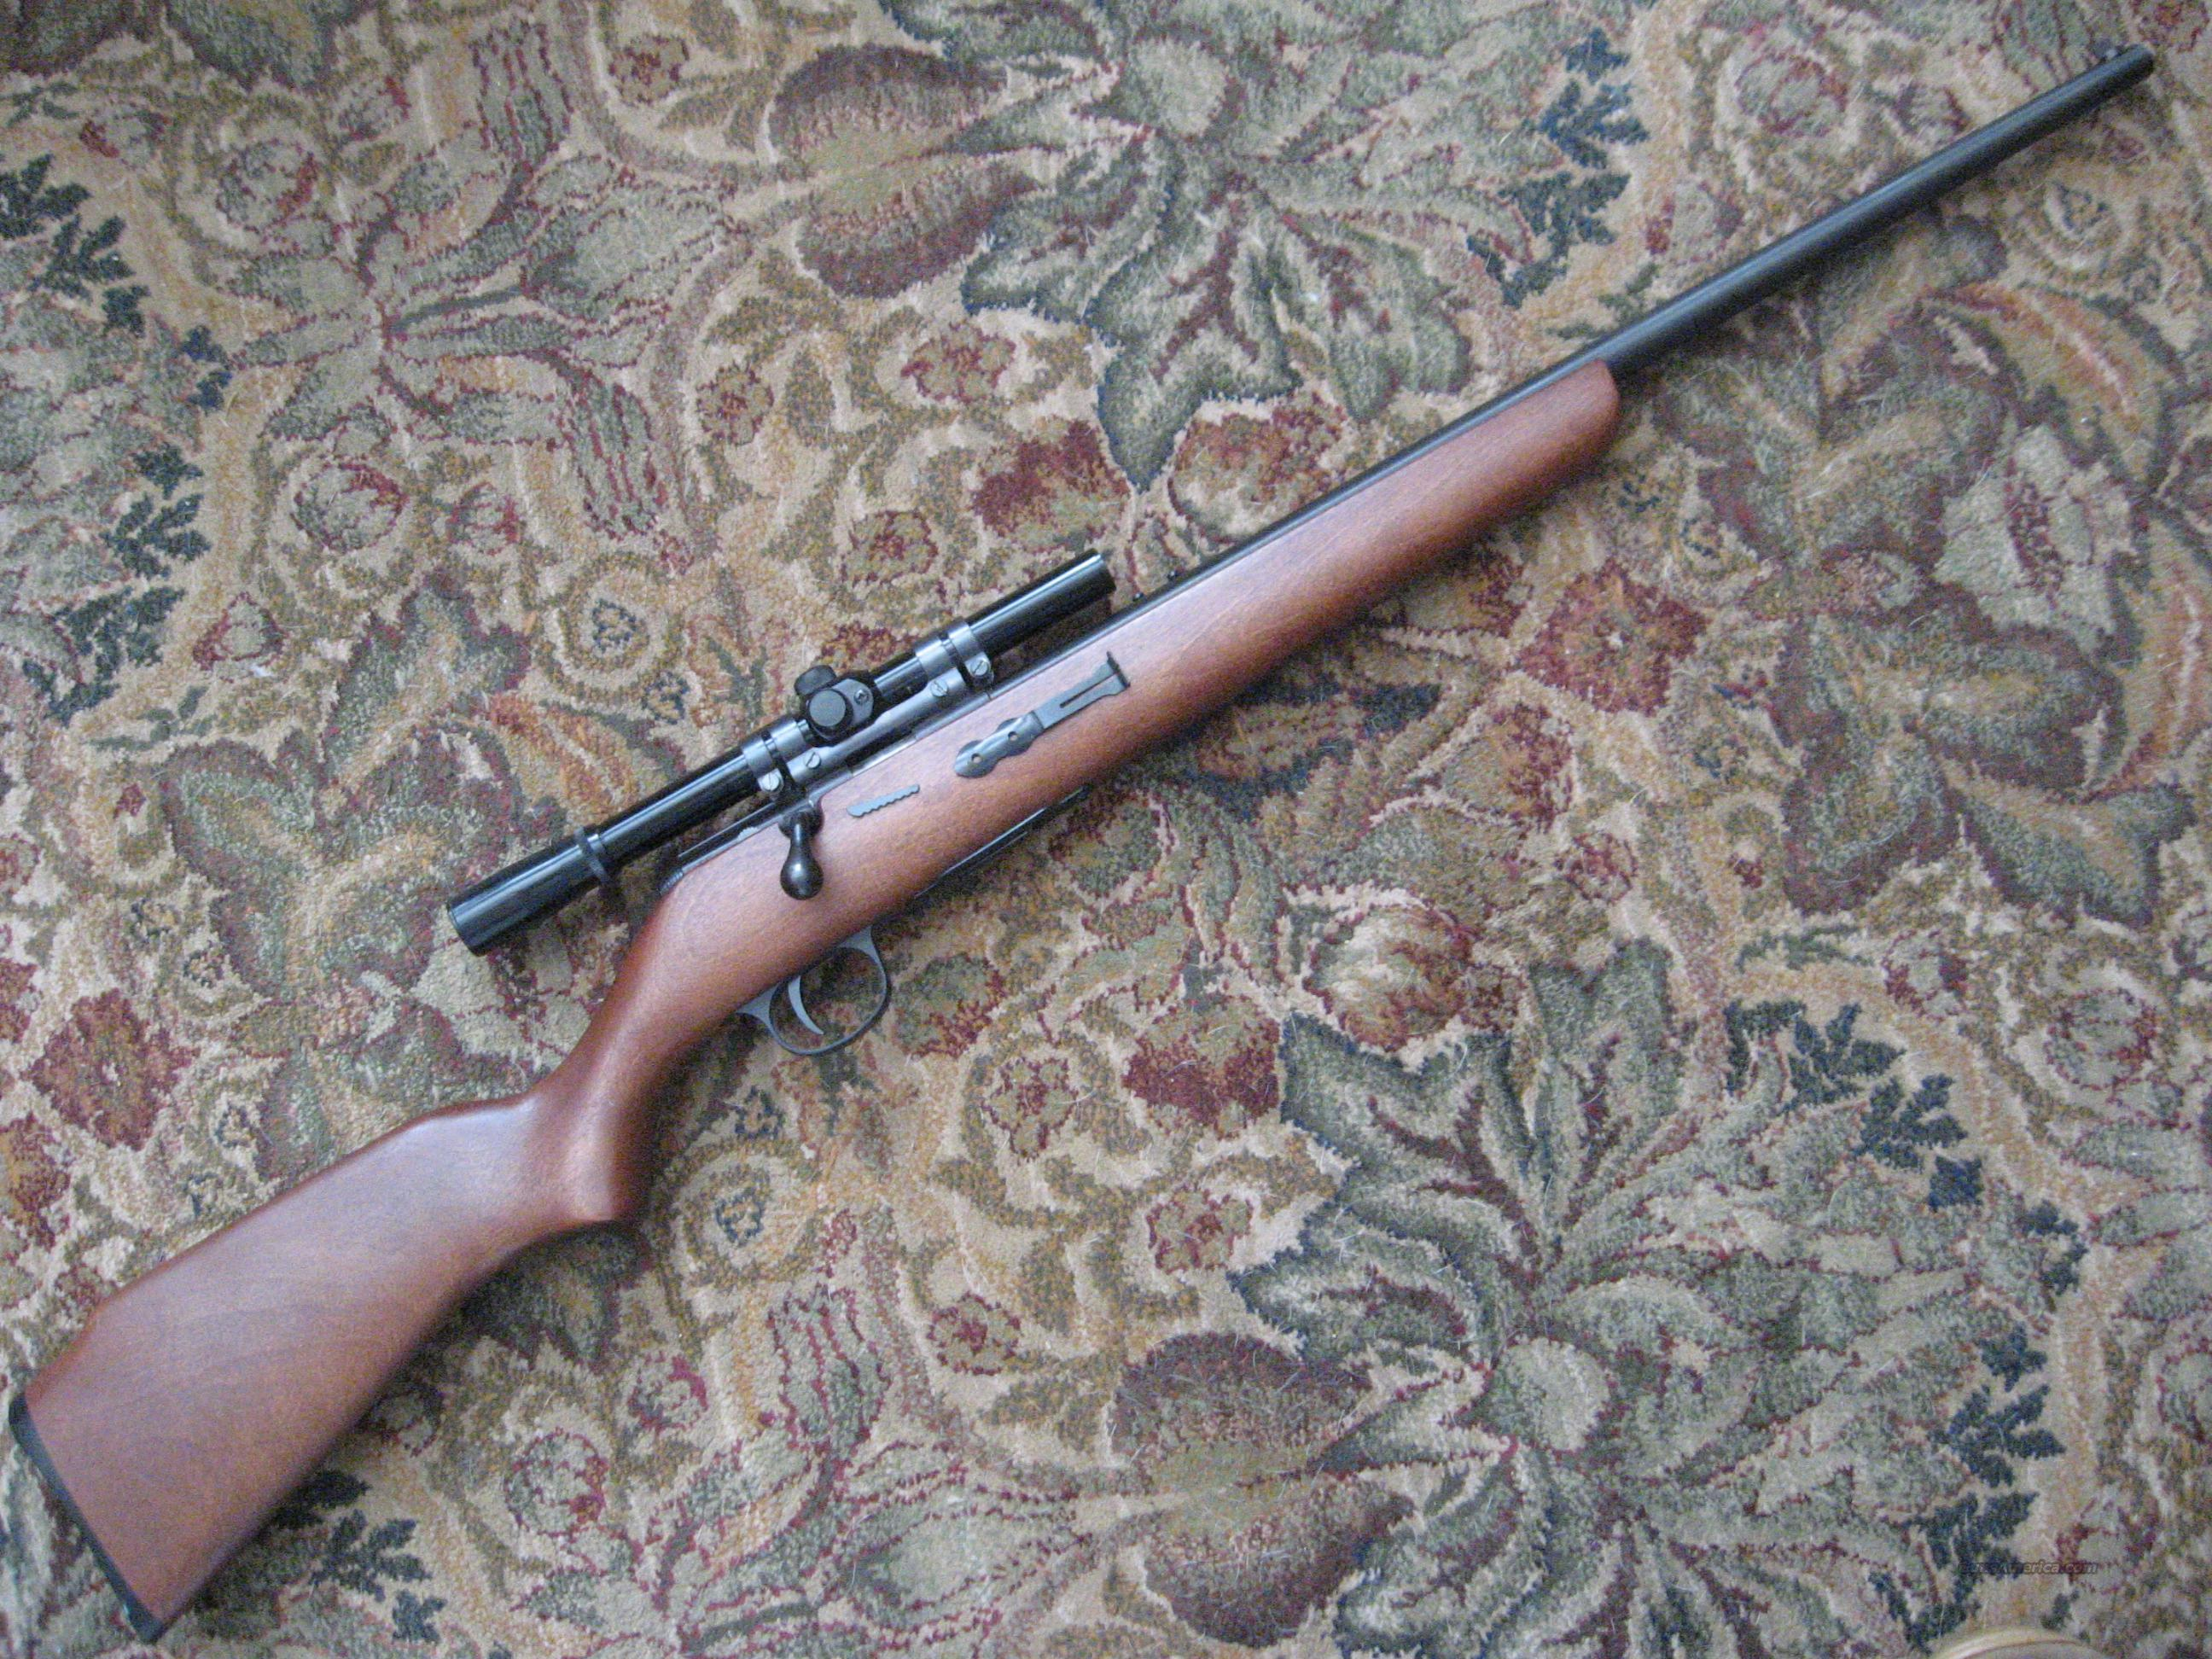 w/scope Mod. 865 Plainsman .22cal. bolt action repeater  Guns > Rifles > Harrington & Richardson Rifles